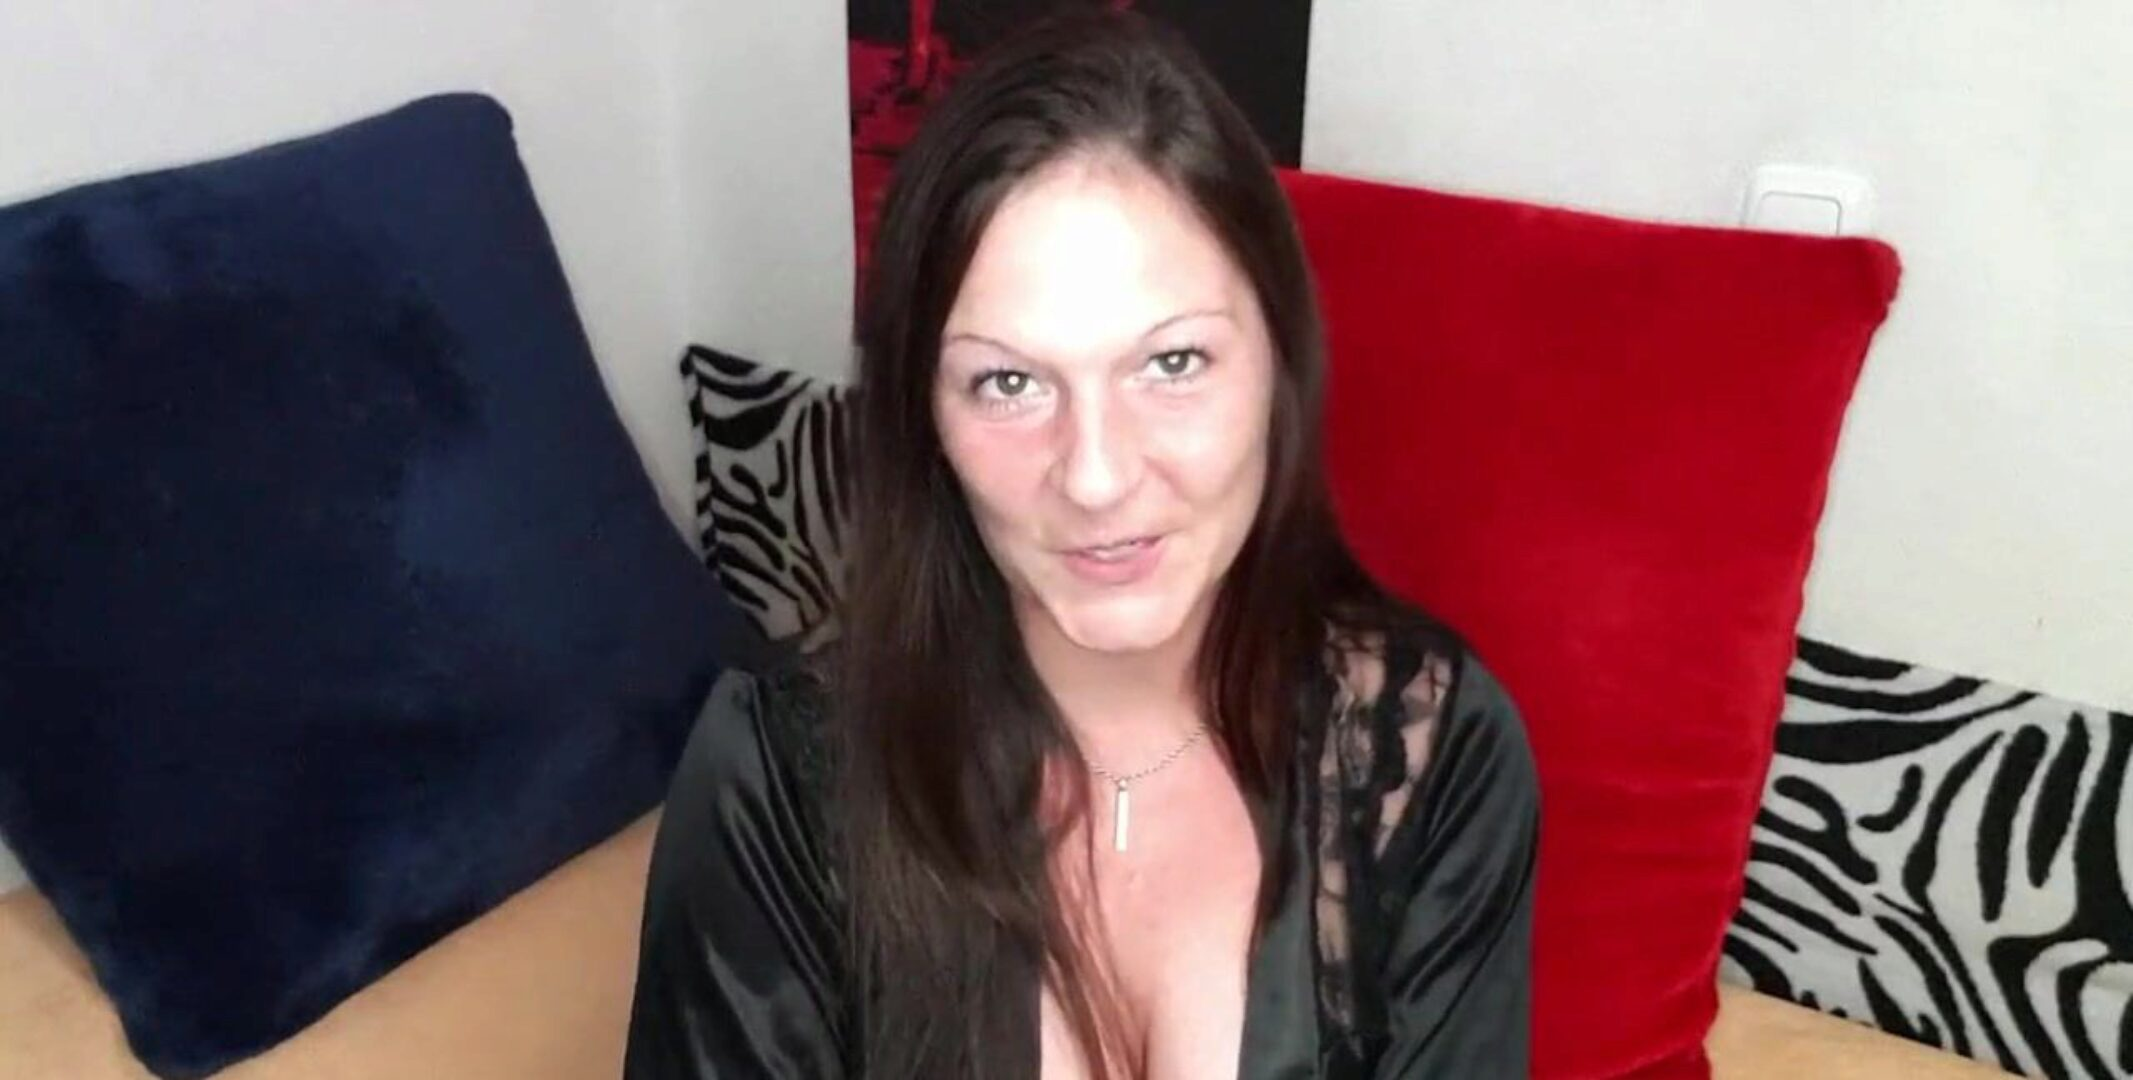 German Amateur mother I'd like to fuck with Huge Tits First Time Naked Sexy Watch German Amateur mother I'd like to fuck with Huge Tits First Time Naked Sexy video on xHamster - the ultimate selection of free Huge Tits Tube & Xxnx mother I'd like to fuck HD porn tube vids